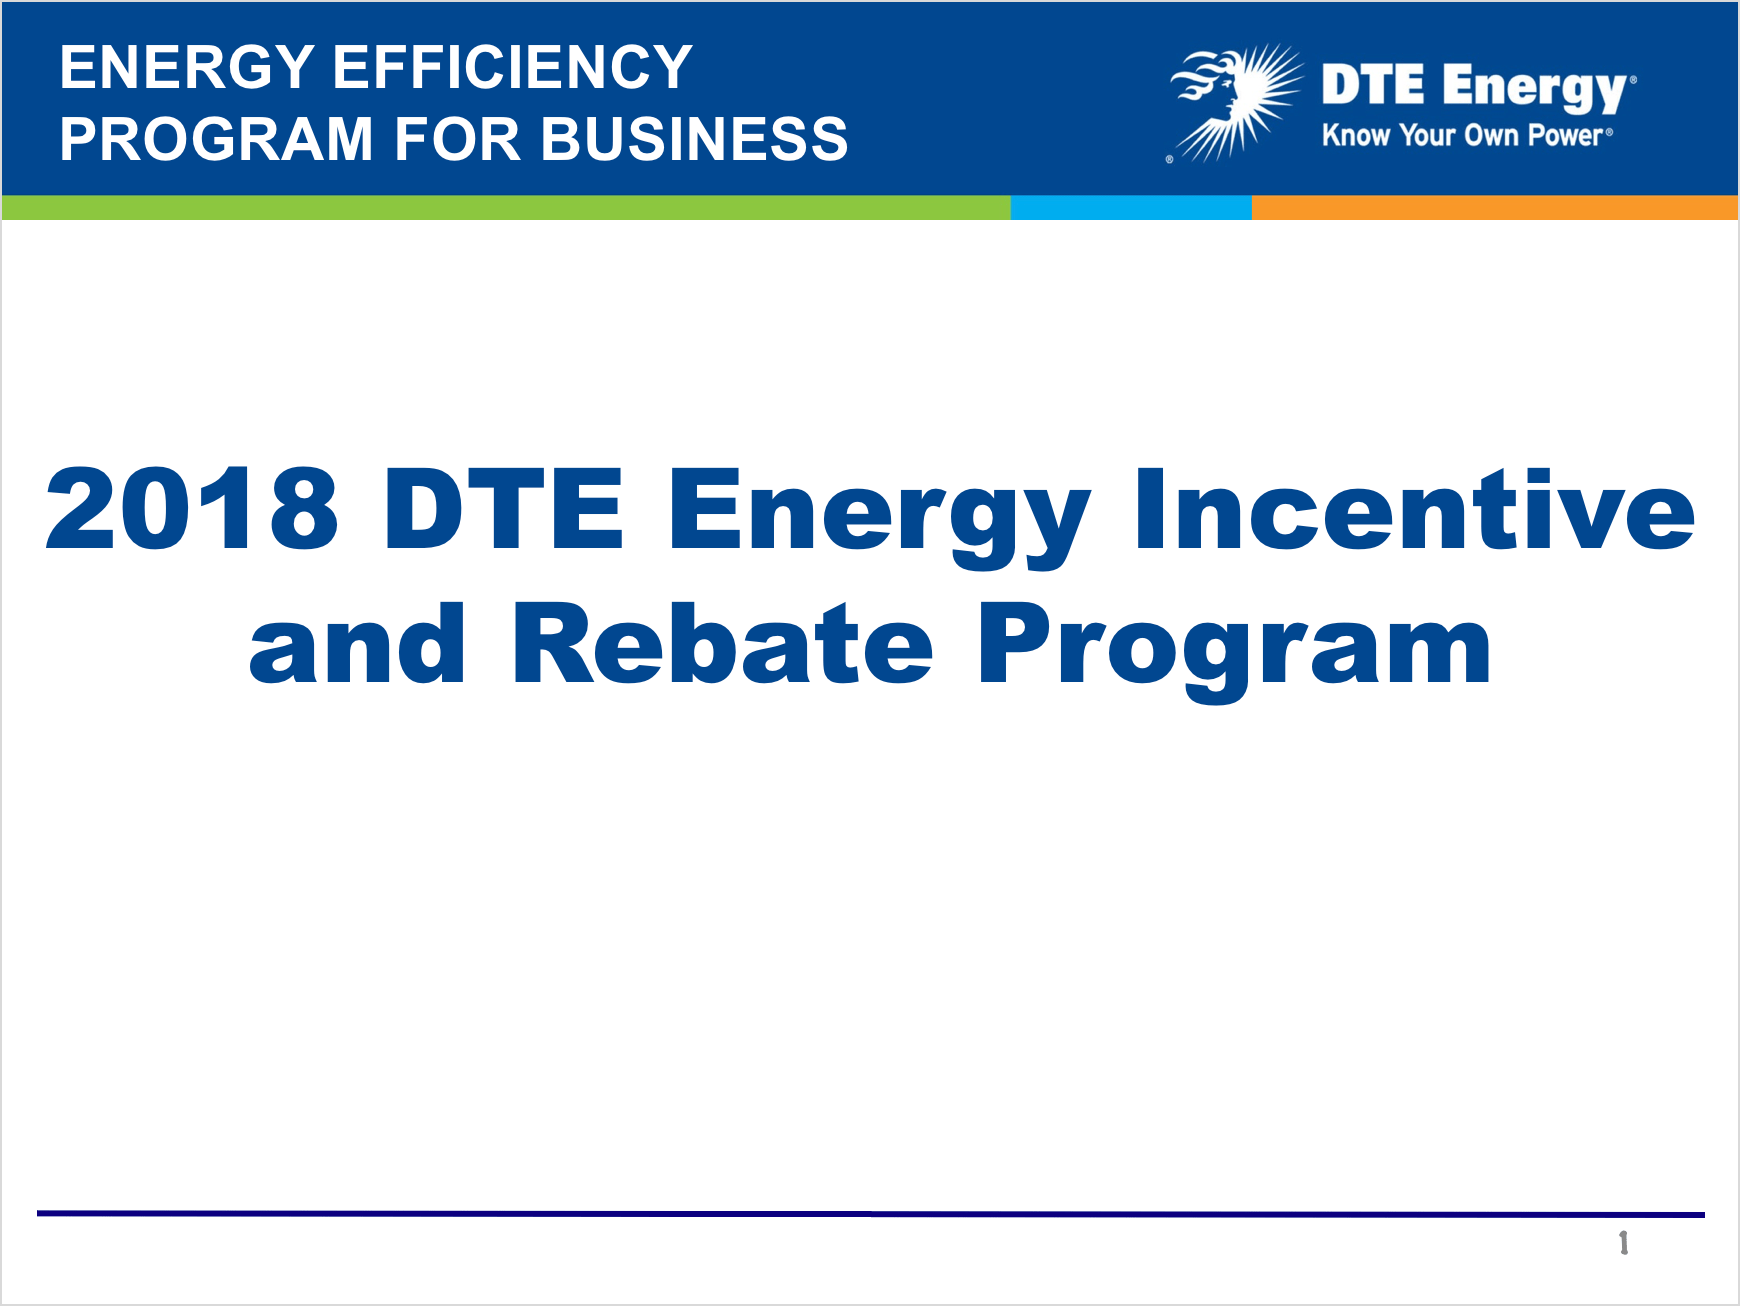 DTE Energy Incentive and Rebate Program